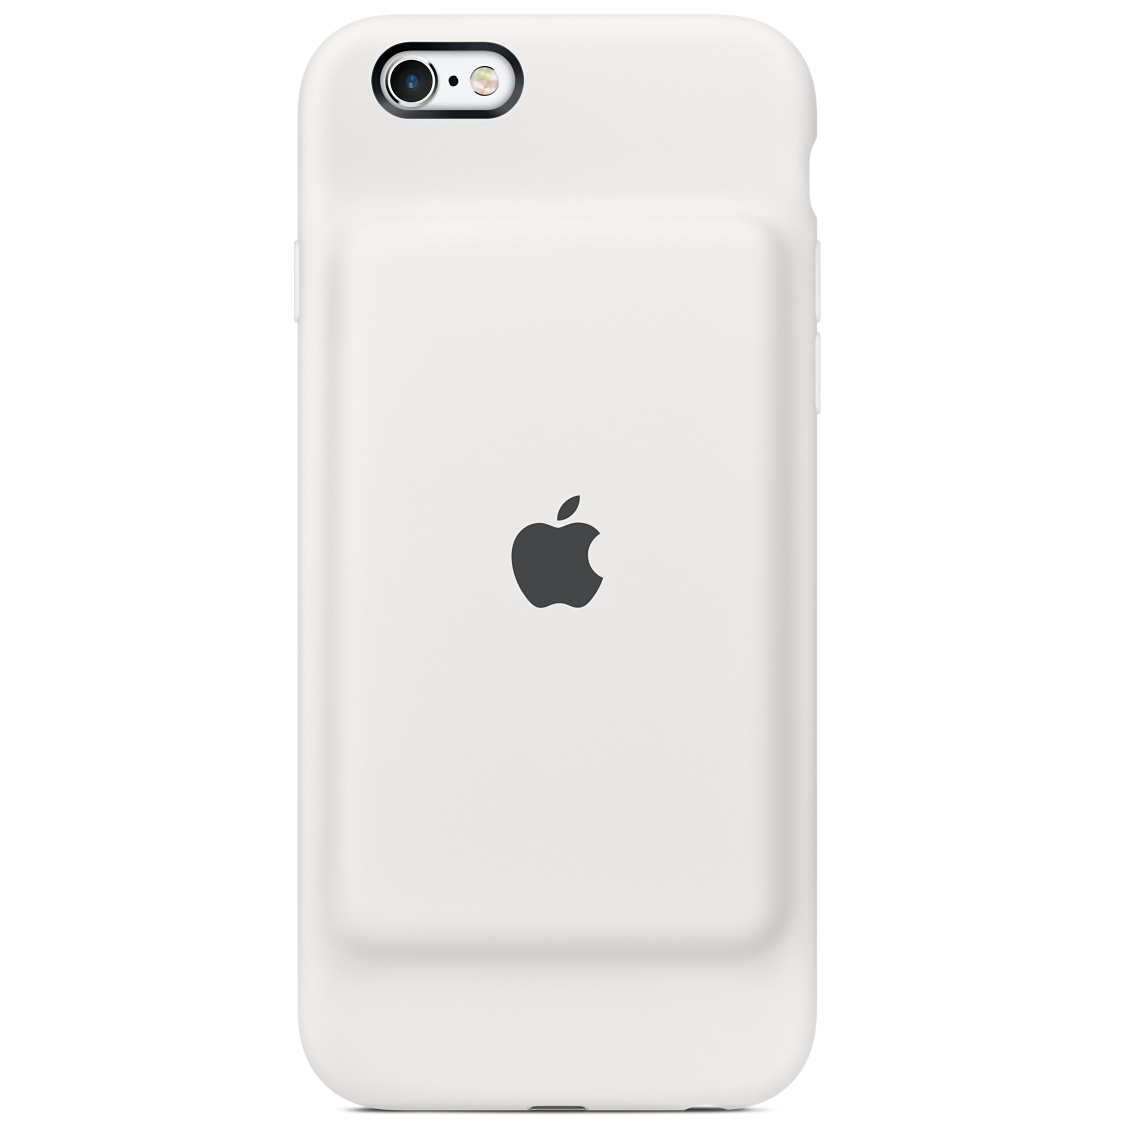 buy online 50a18 4b138 Apple releases $99 iPhone 6s Smart Battery Case, Apple's first ...